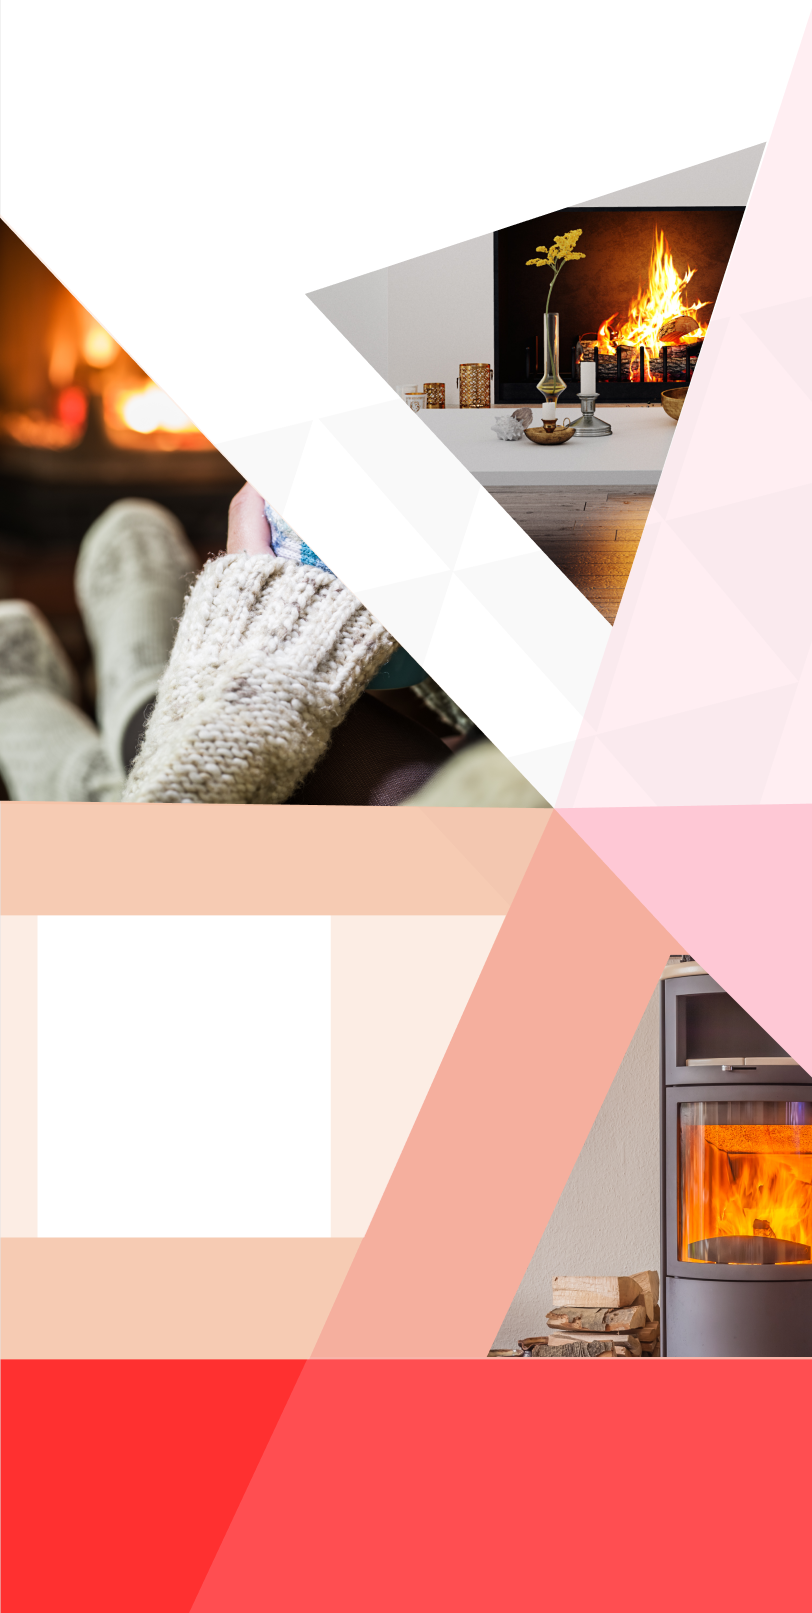 background image with red and white star shape and fireplace photo